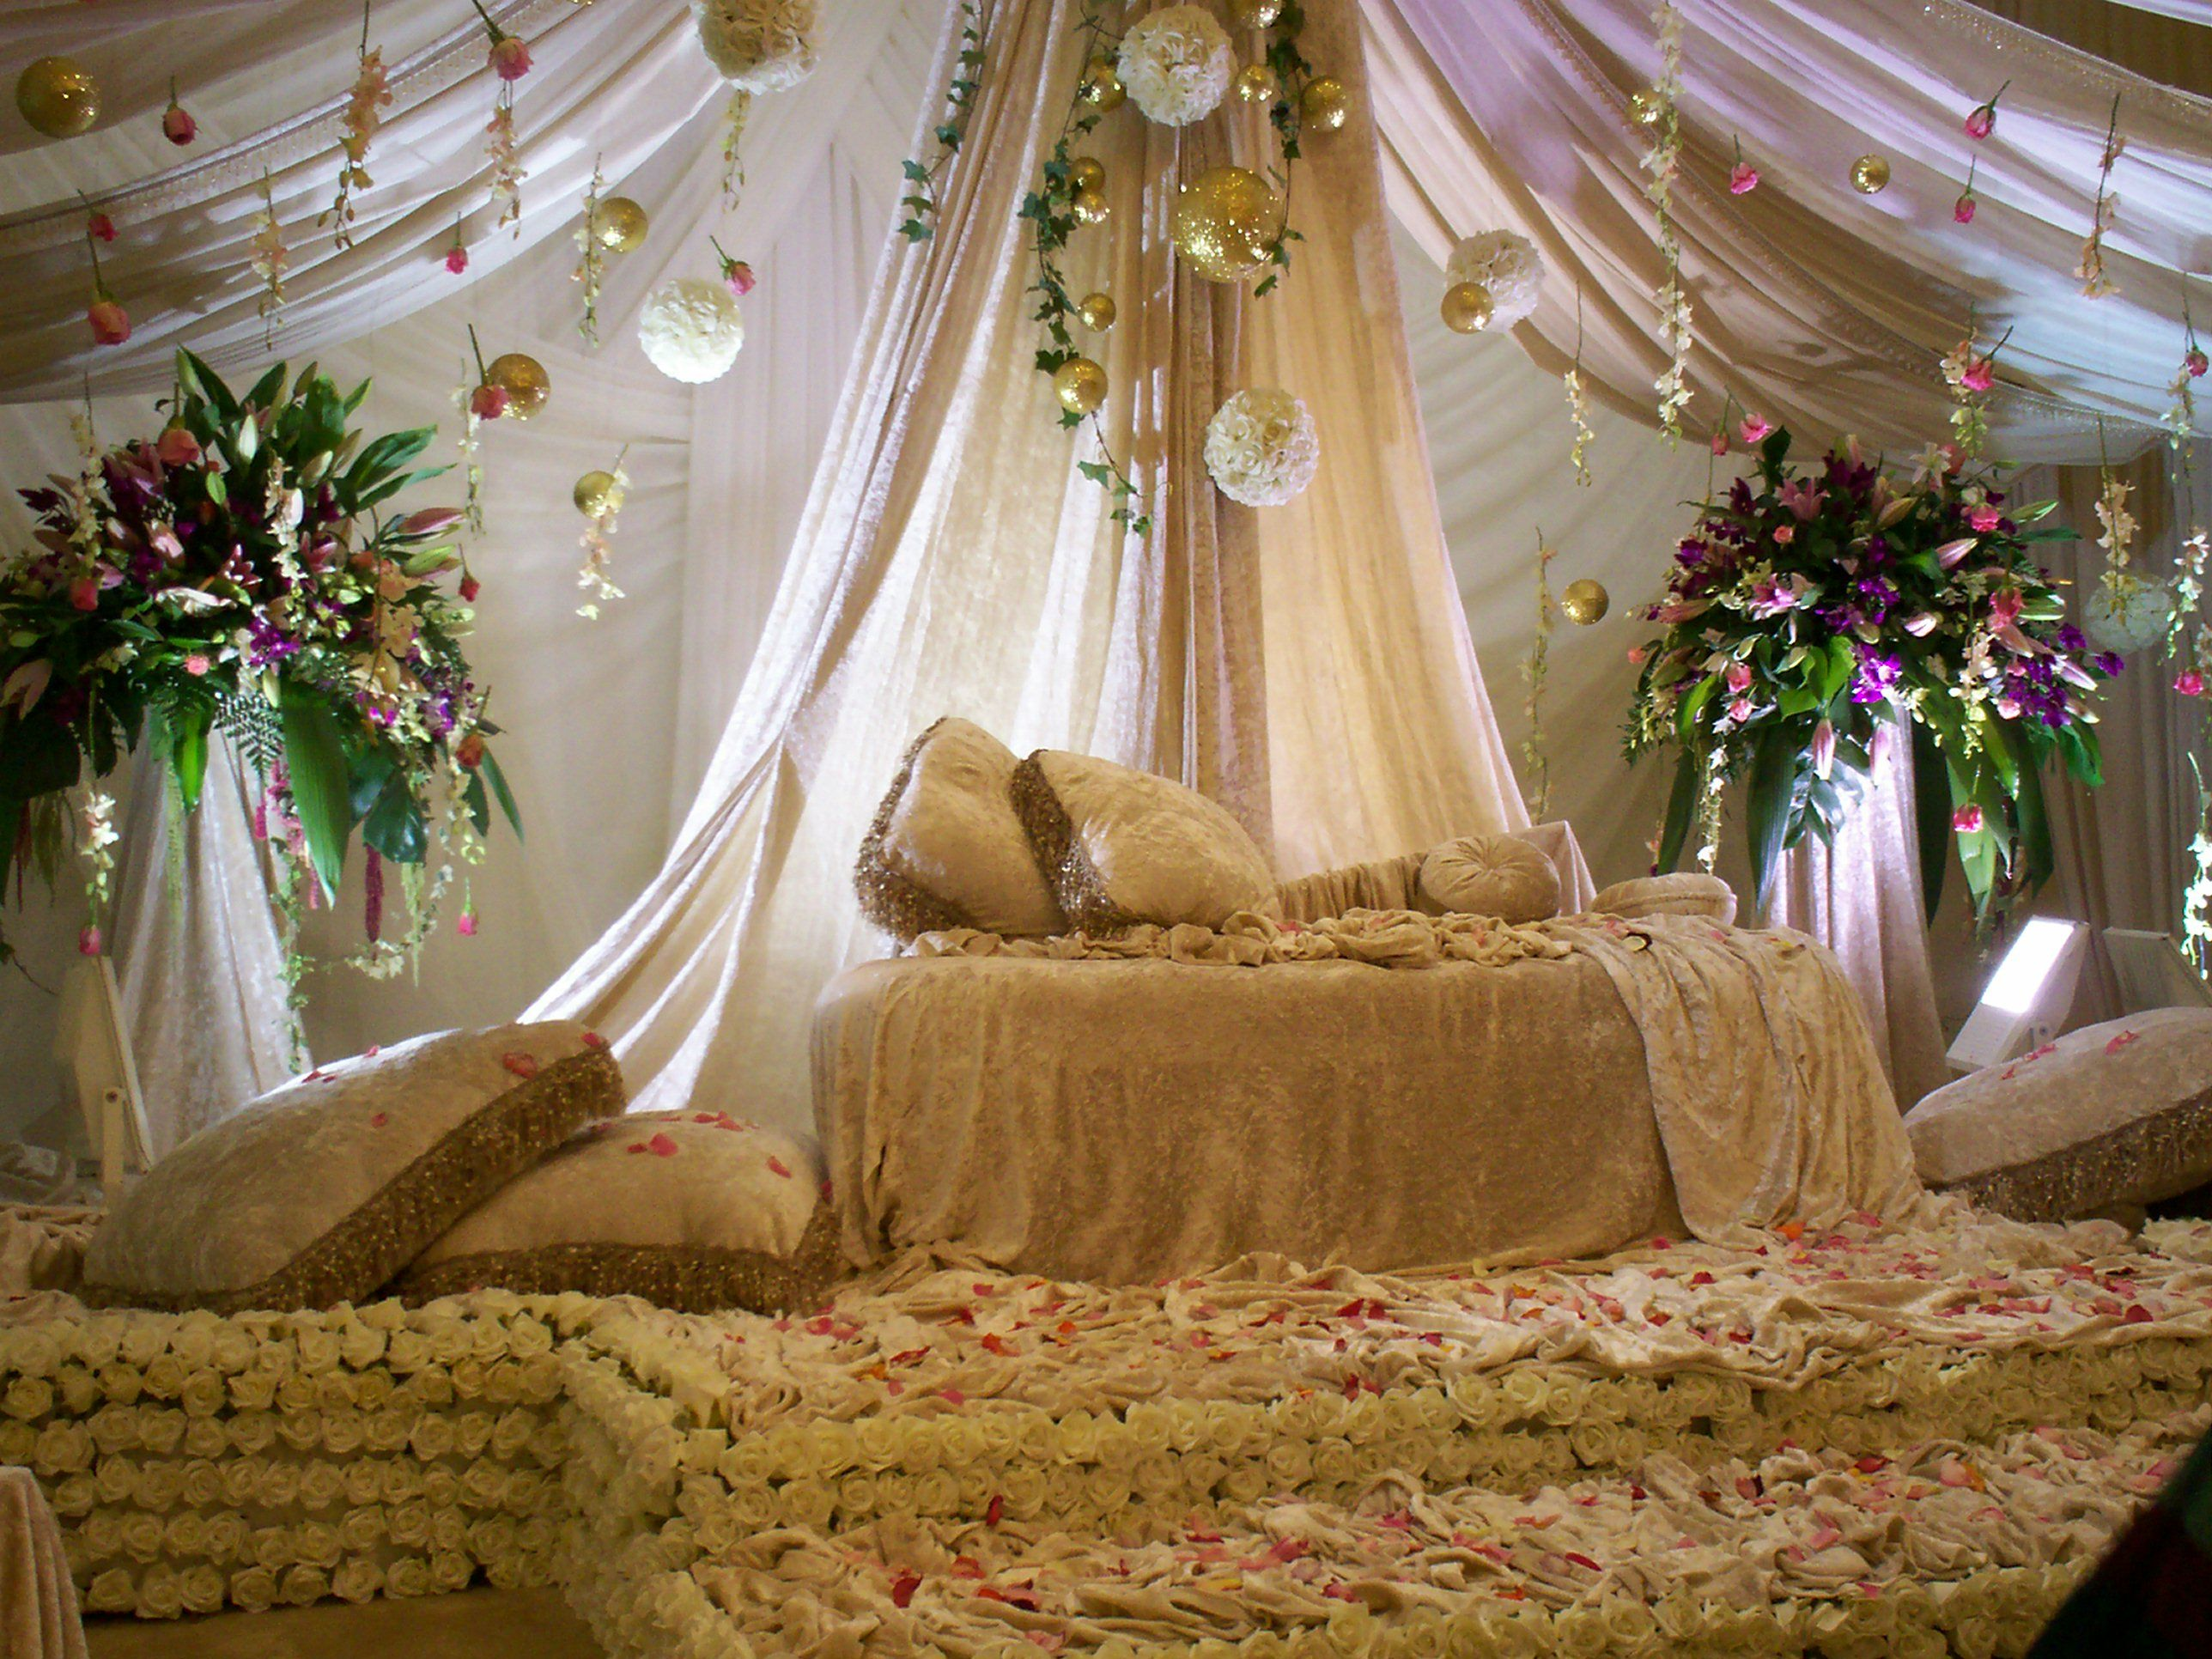 Arabian Wedding Decoration I Can Just Envision Myself And Future Husband Being Fed With Grapes By The Best Man And Maid Of Honor